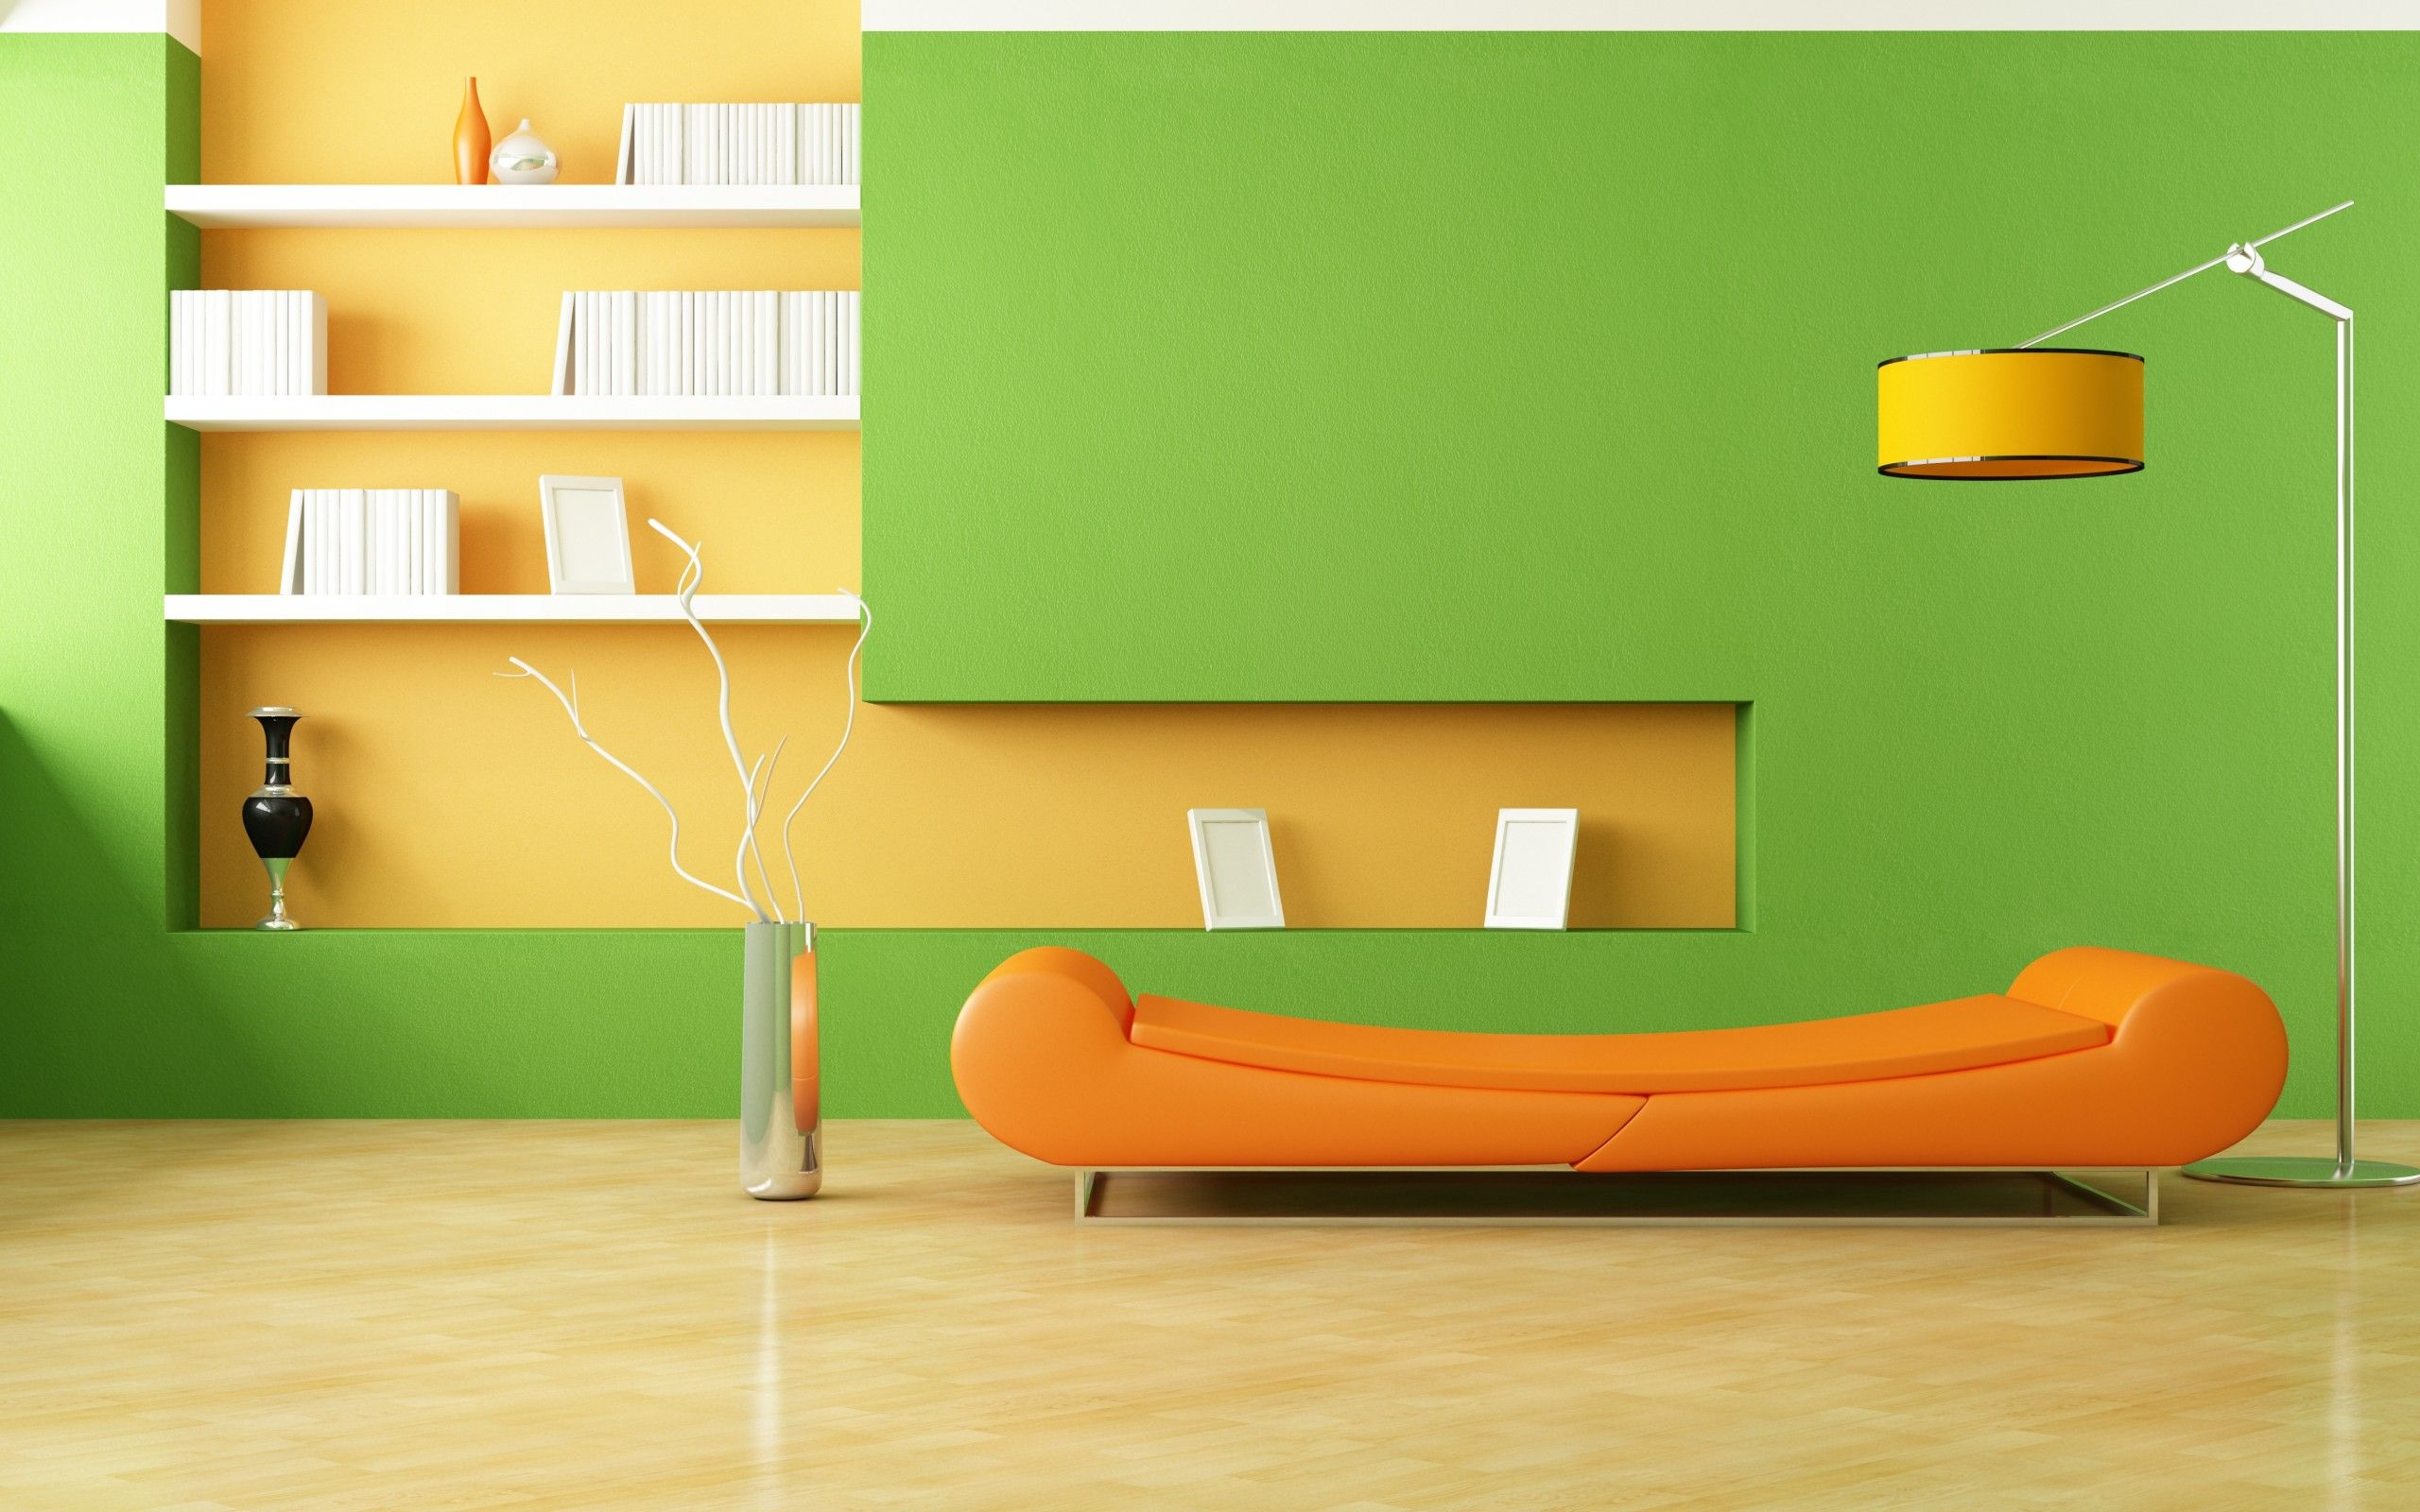 Green and yellow living room - Green And Yellow Room Modern Living Room Kitchen Final Architecture Fireplace Lime Green And Yellow Walls Living Room Teal Green And Yellow Living Room